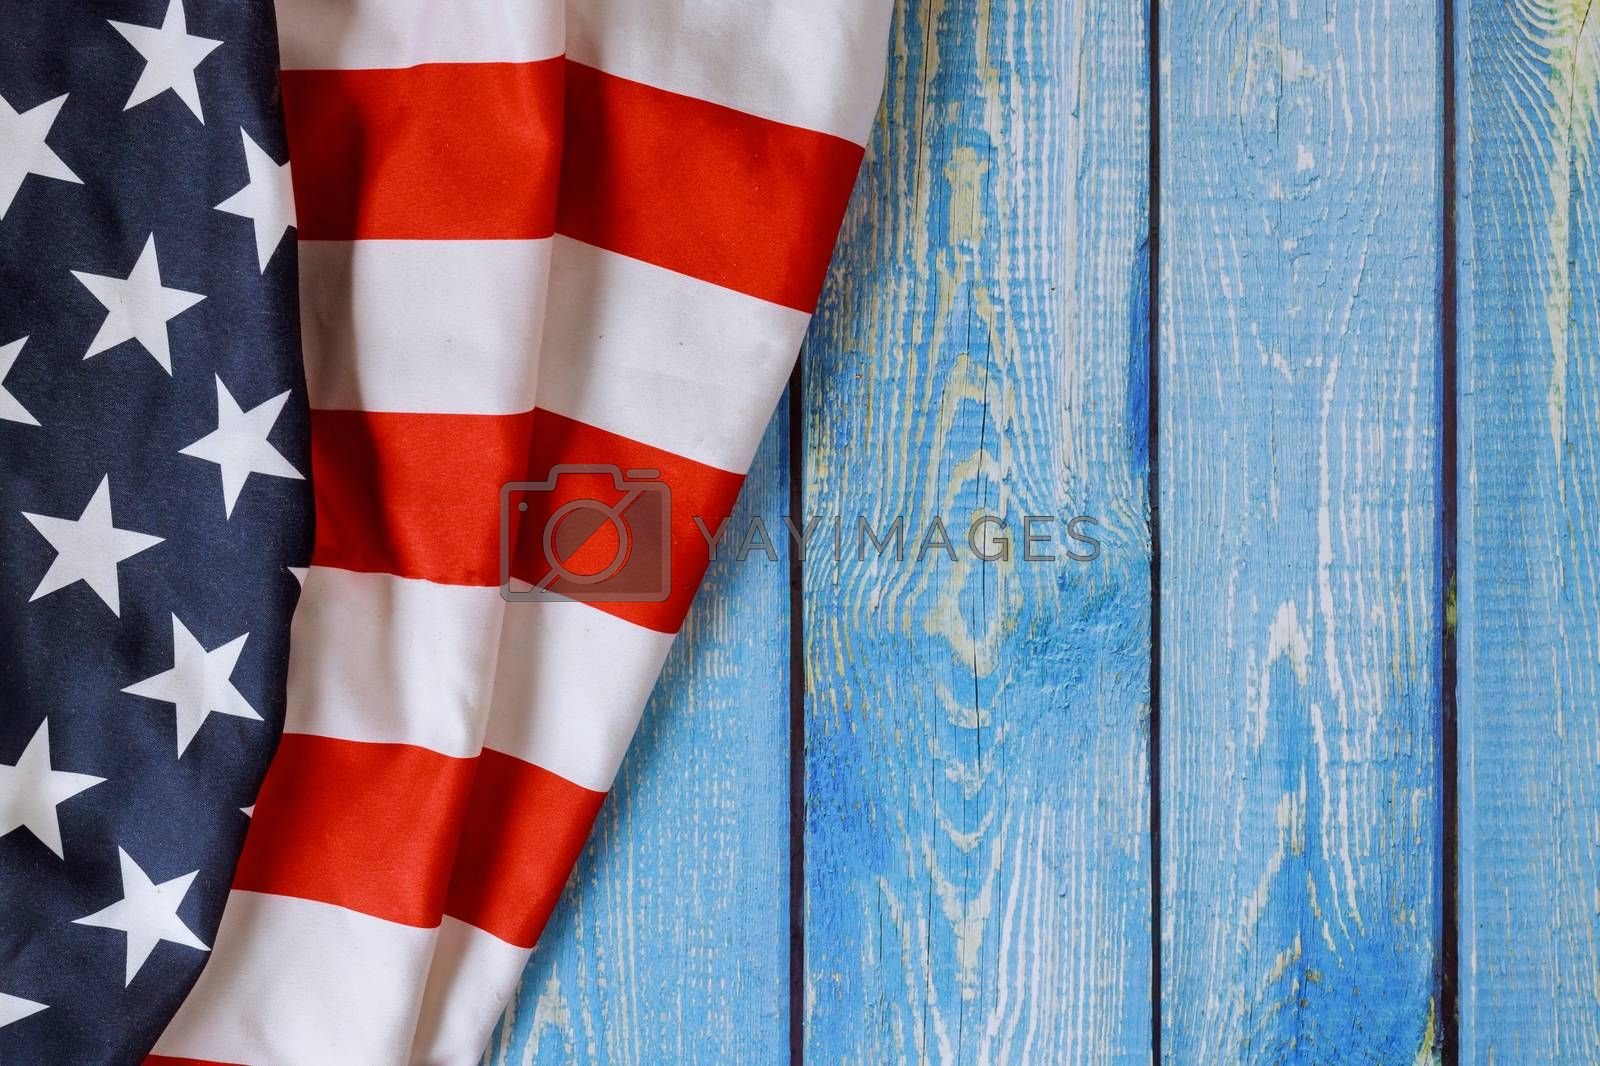 American flag symbol celebrating United States America holiday with veterans day Memorial Day Labor Day Independence day on old wood background